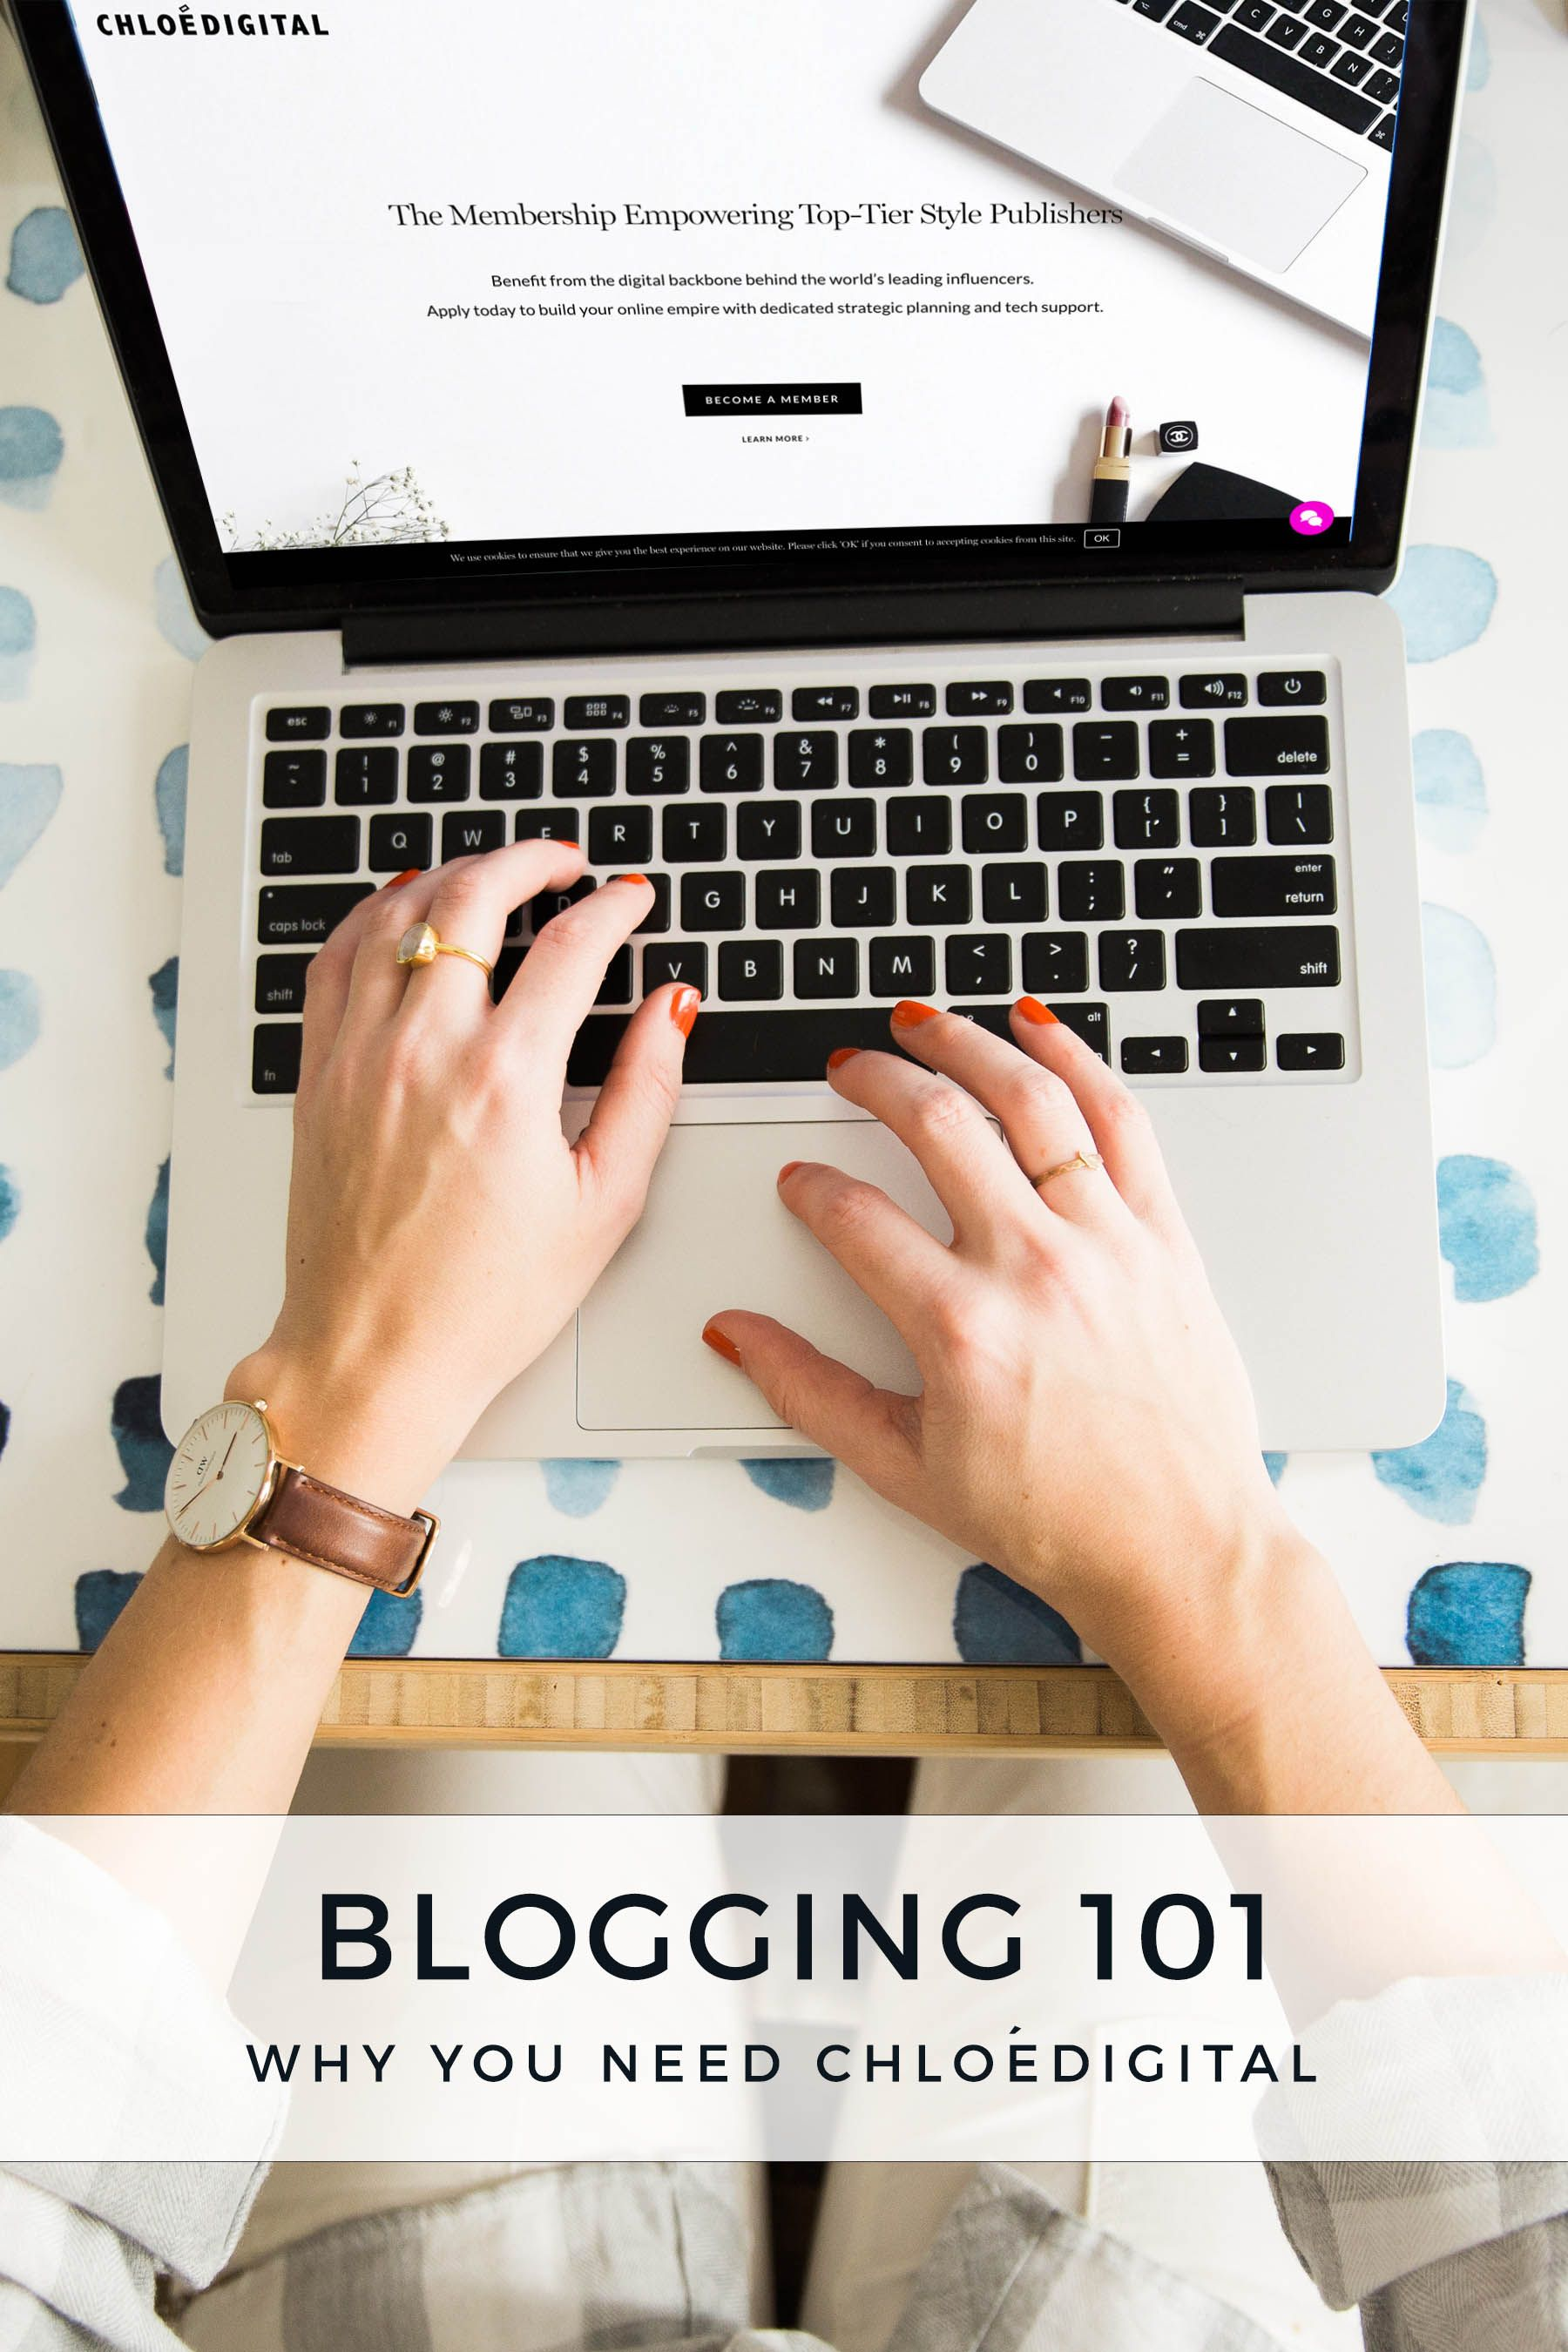 blogging101-chloedigital